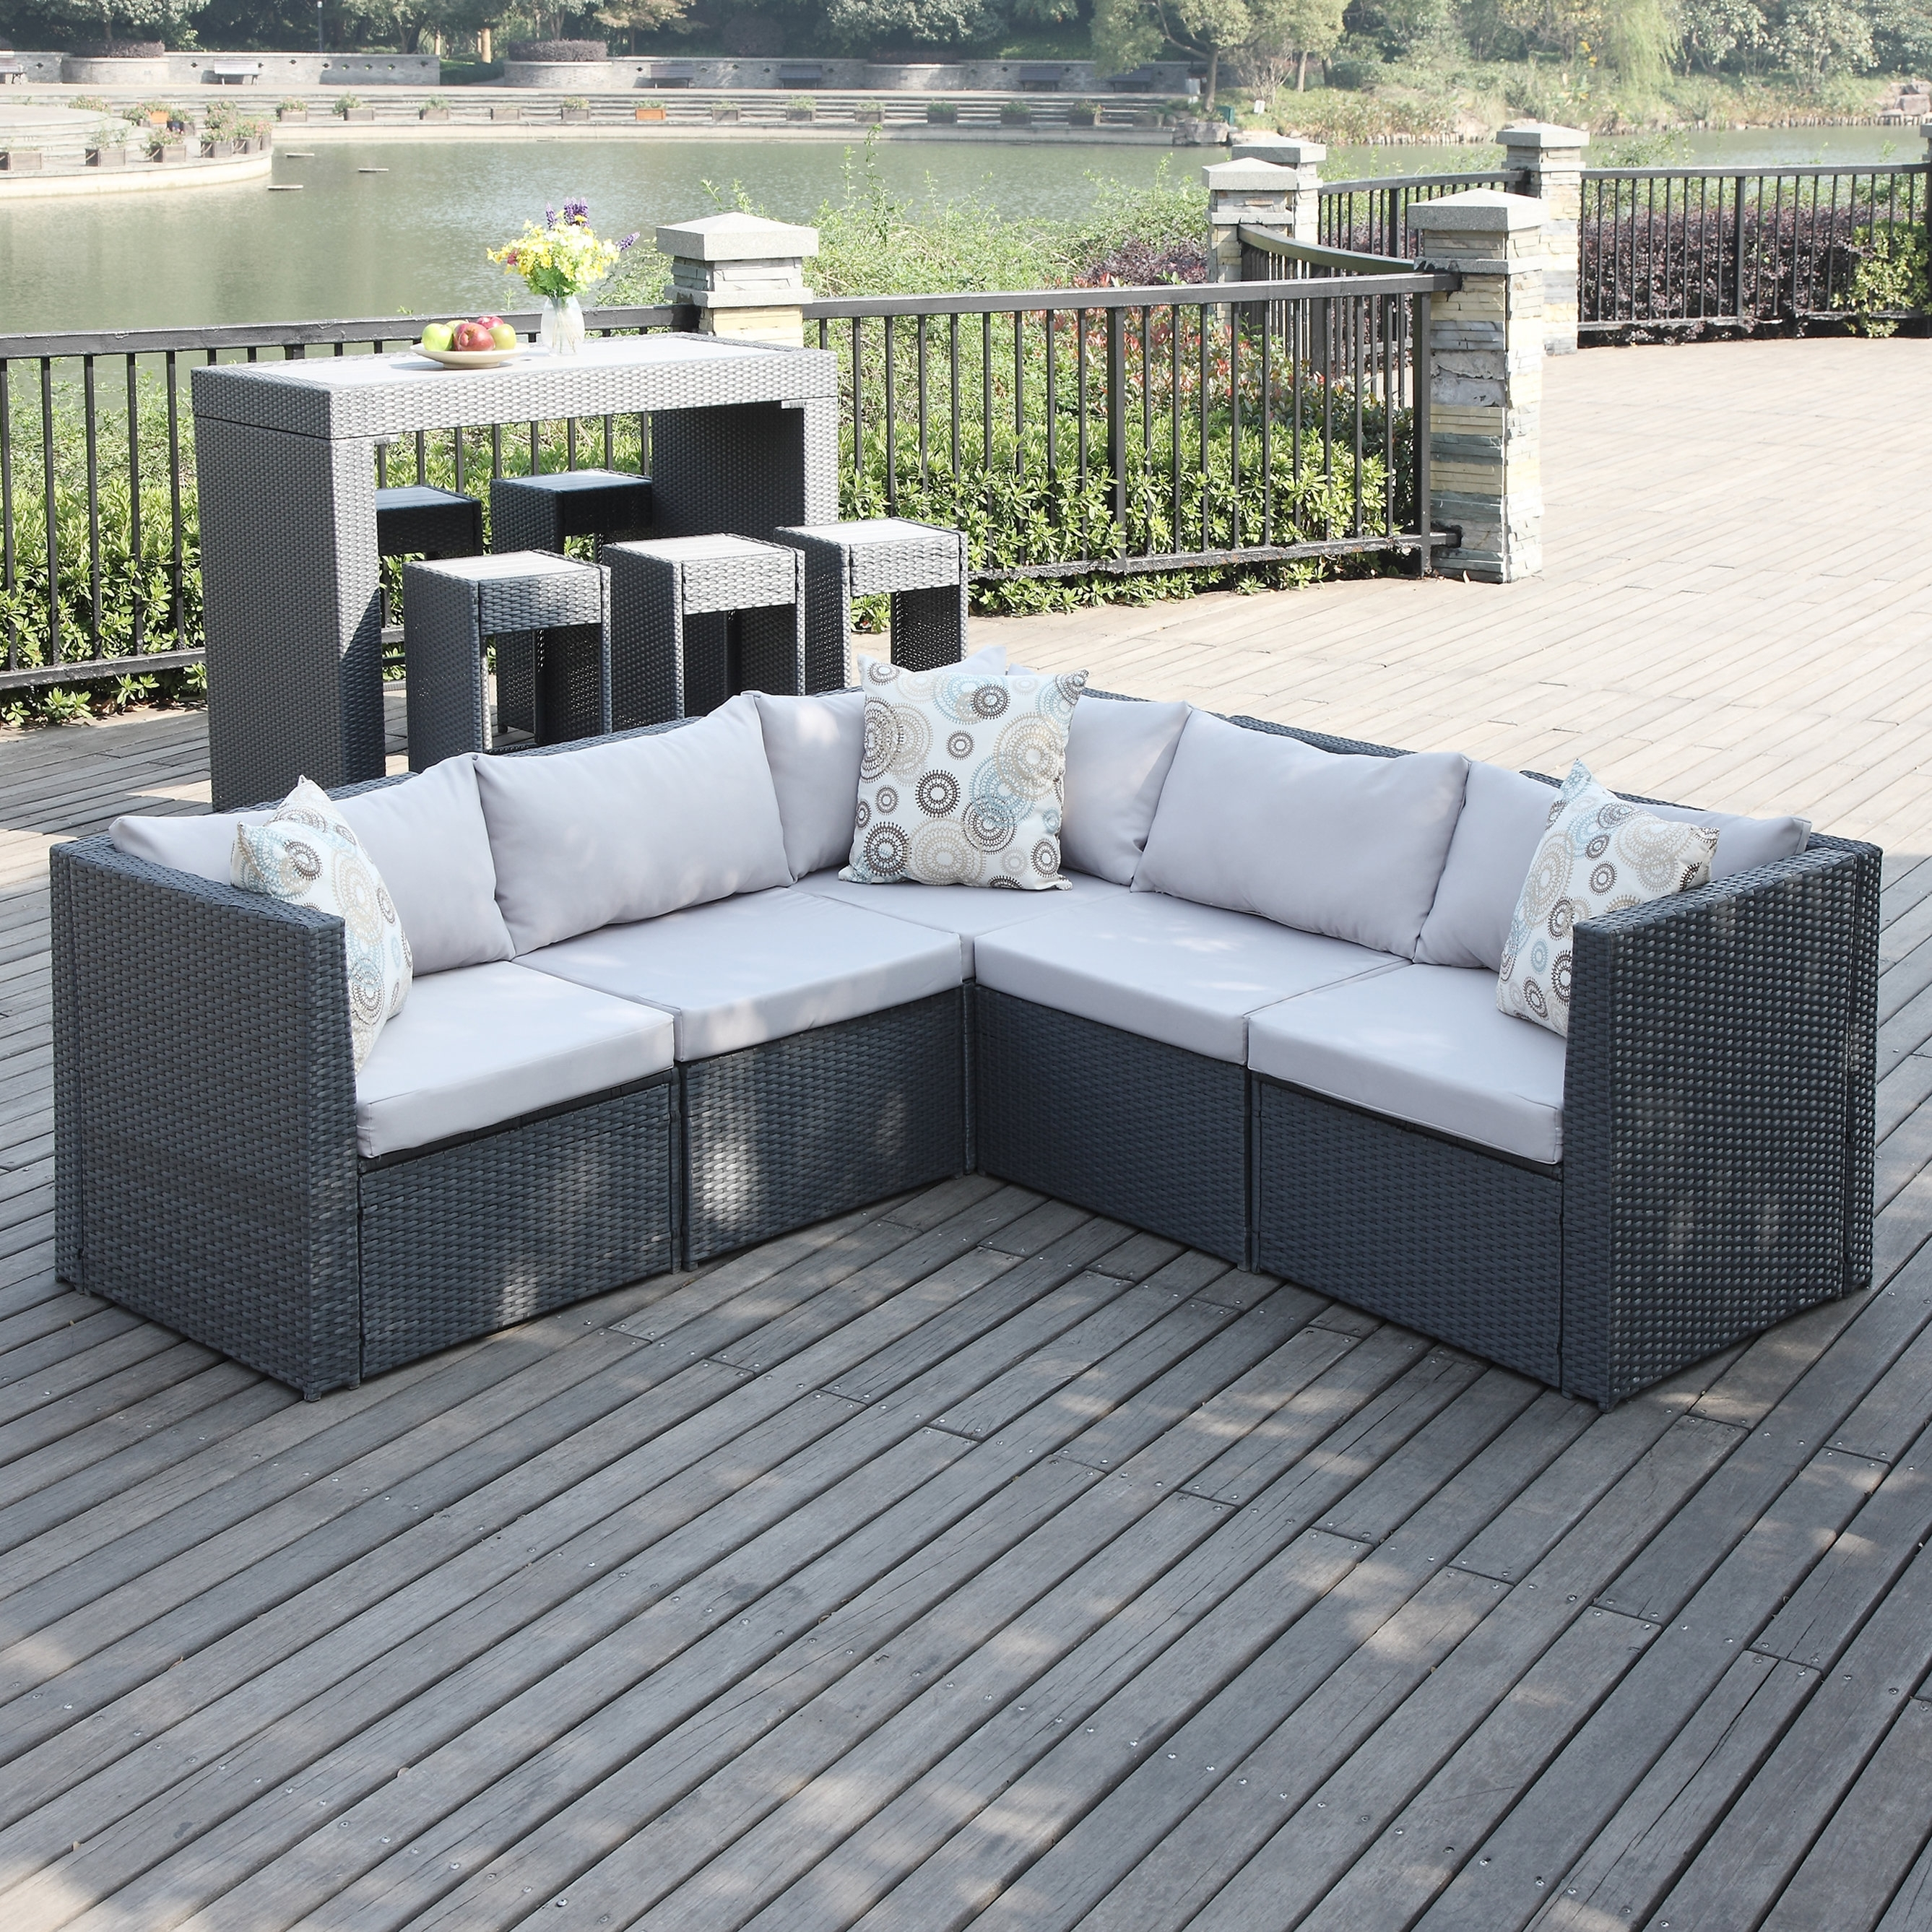 Wicker Patio Sofas & Loveseats You'll Love | Wayfair For Patio Sofas (Image 10 of 10)